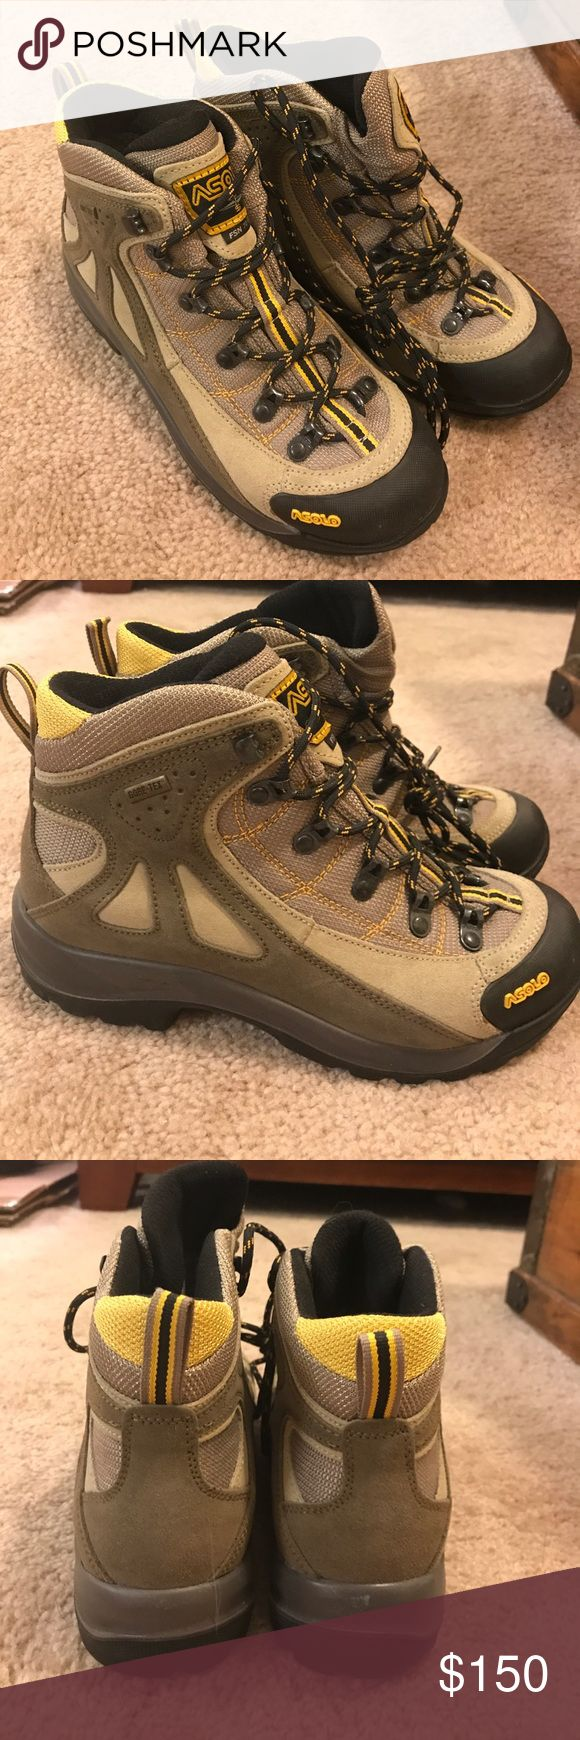 Women's ASOLO FSN 70 GTX Hiking Boots Brand new without box, never been worn. Women's size 6.5. Shock absorbent and antibacterial. Very nicely lined on the inside. Gore-Tex style. Water resistant suede and leather/rubber toe. As seen at REI for $325 Asolo Shoes Winter & Rain Boots